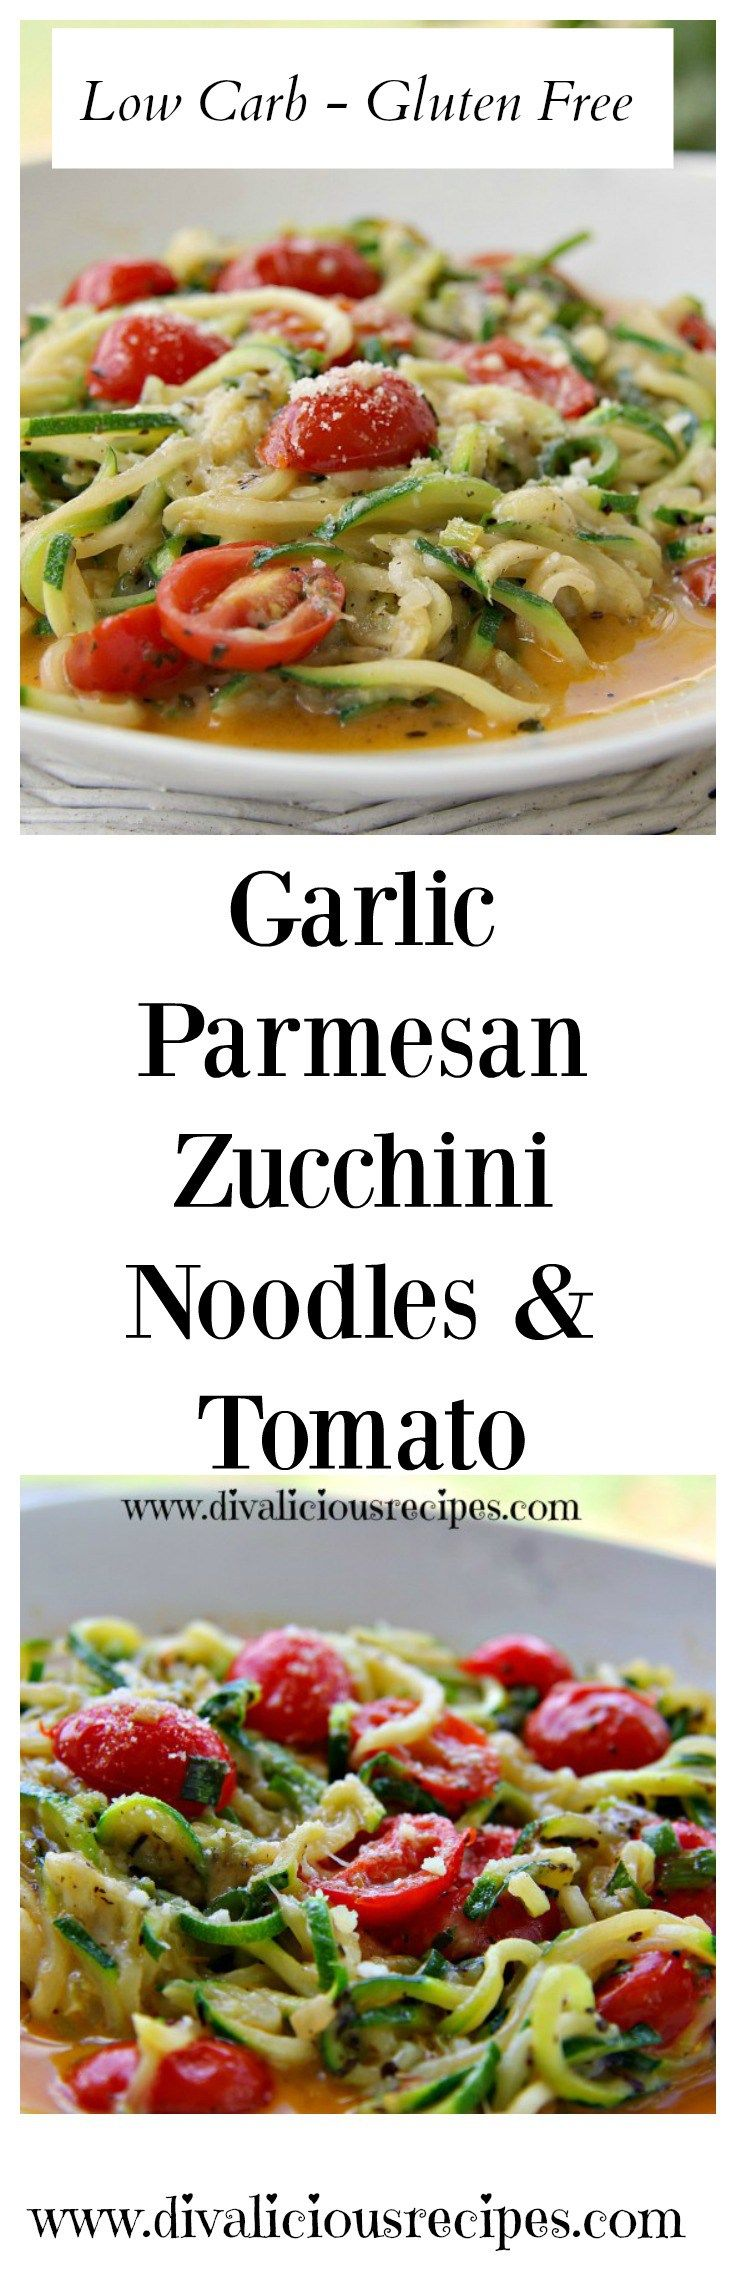 Zucchini noodles in a creamy Parmesan cheese sauce with tomatoes and added garlic. A quick and easy lunch to make in minutes. Recipe - http://divaliciousrecipes.com/2016/04/07/garlic-parmesan-zucchini-noodles-tomato/